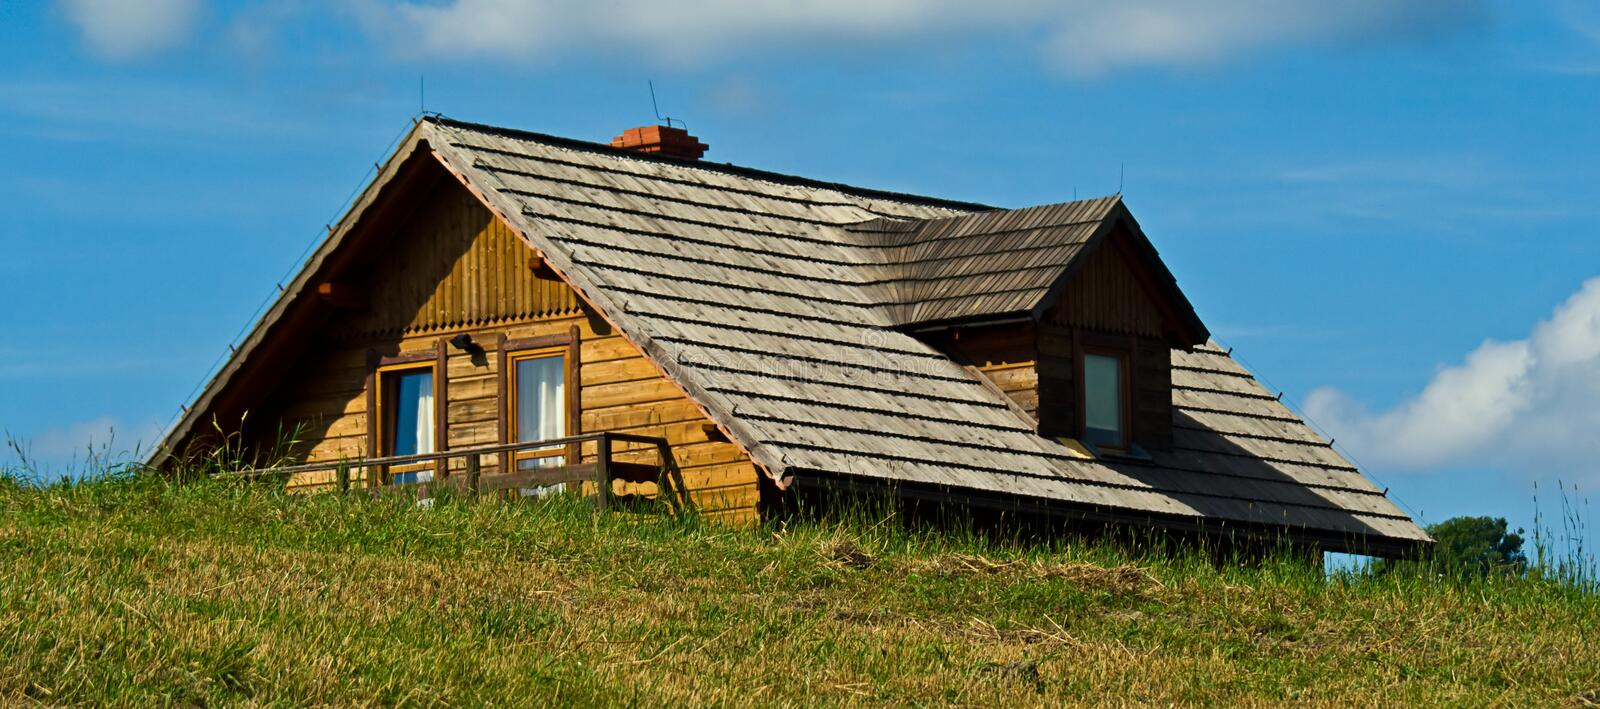 Download Shingles roof stock photo. Image of country, countryside - 12364340